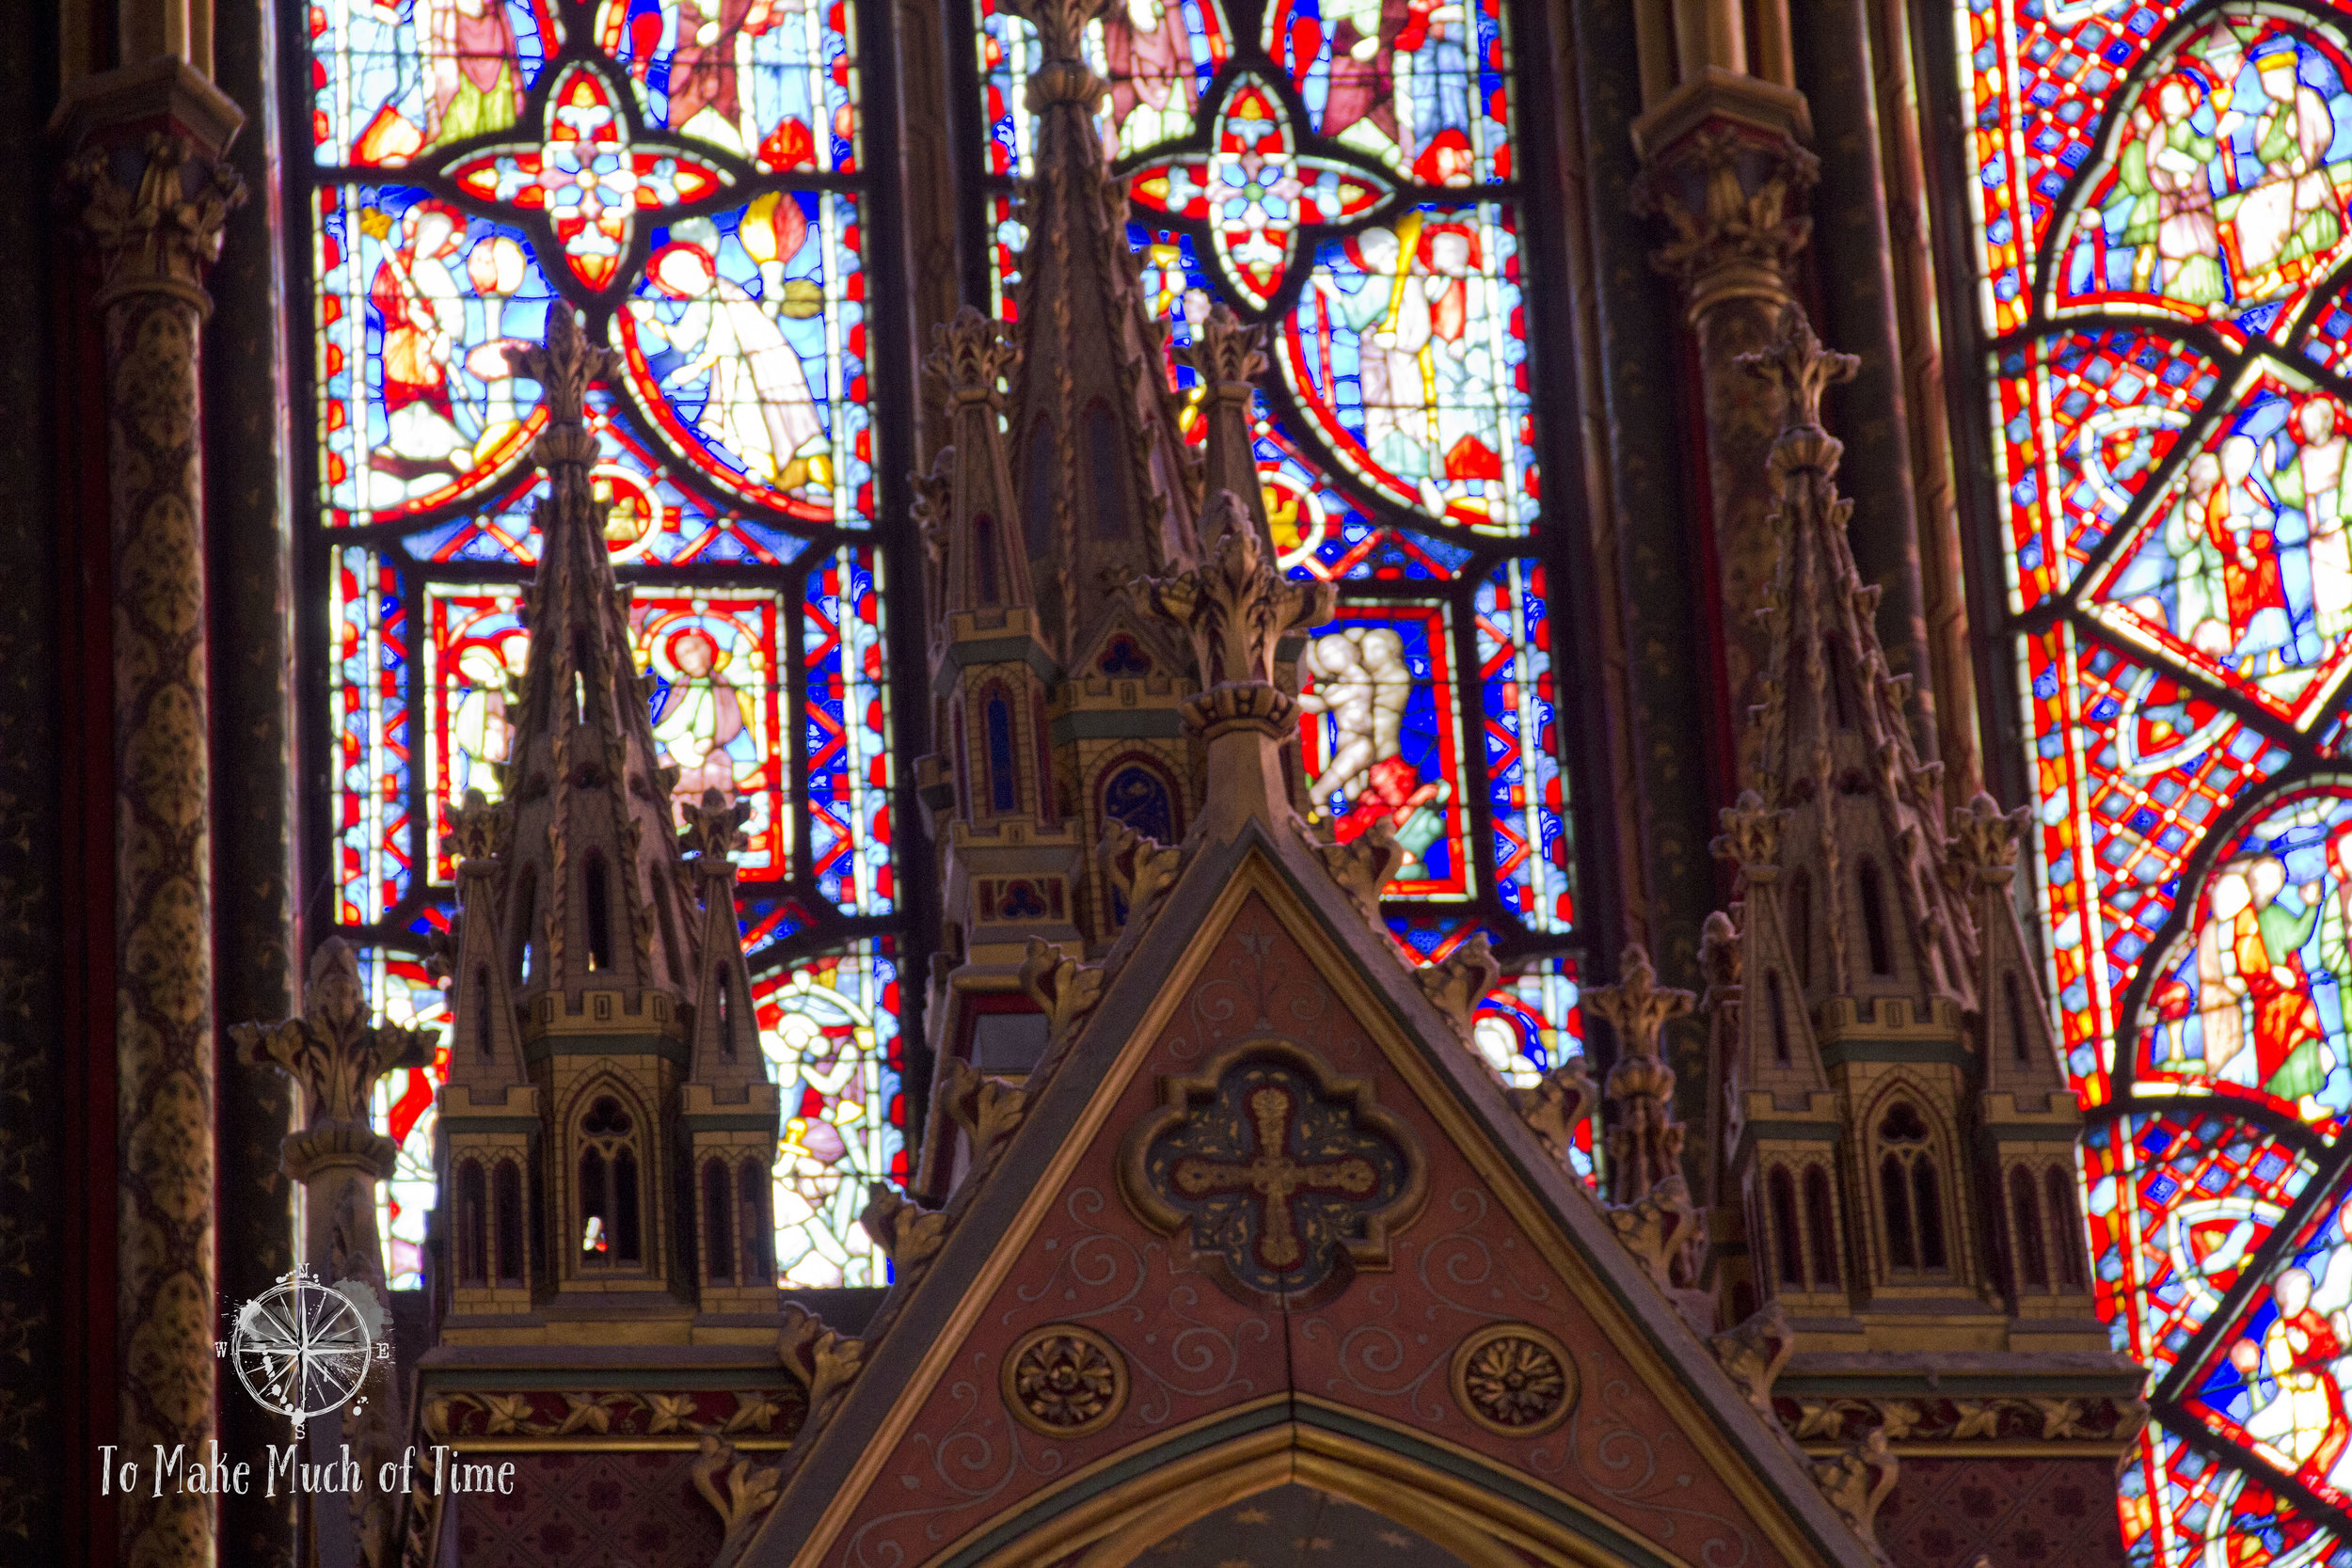 Part of the alter at Sainte-Chapelle with stained glass windows as its backdrop.